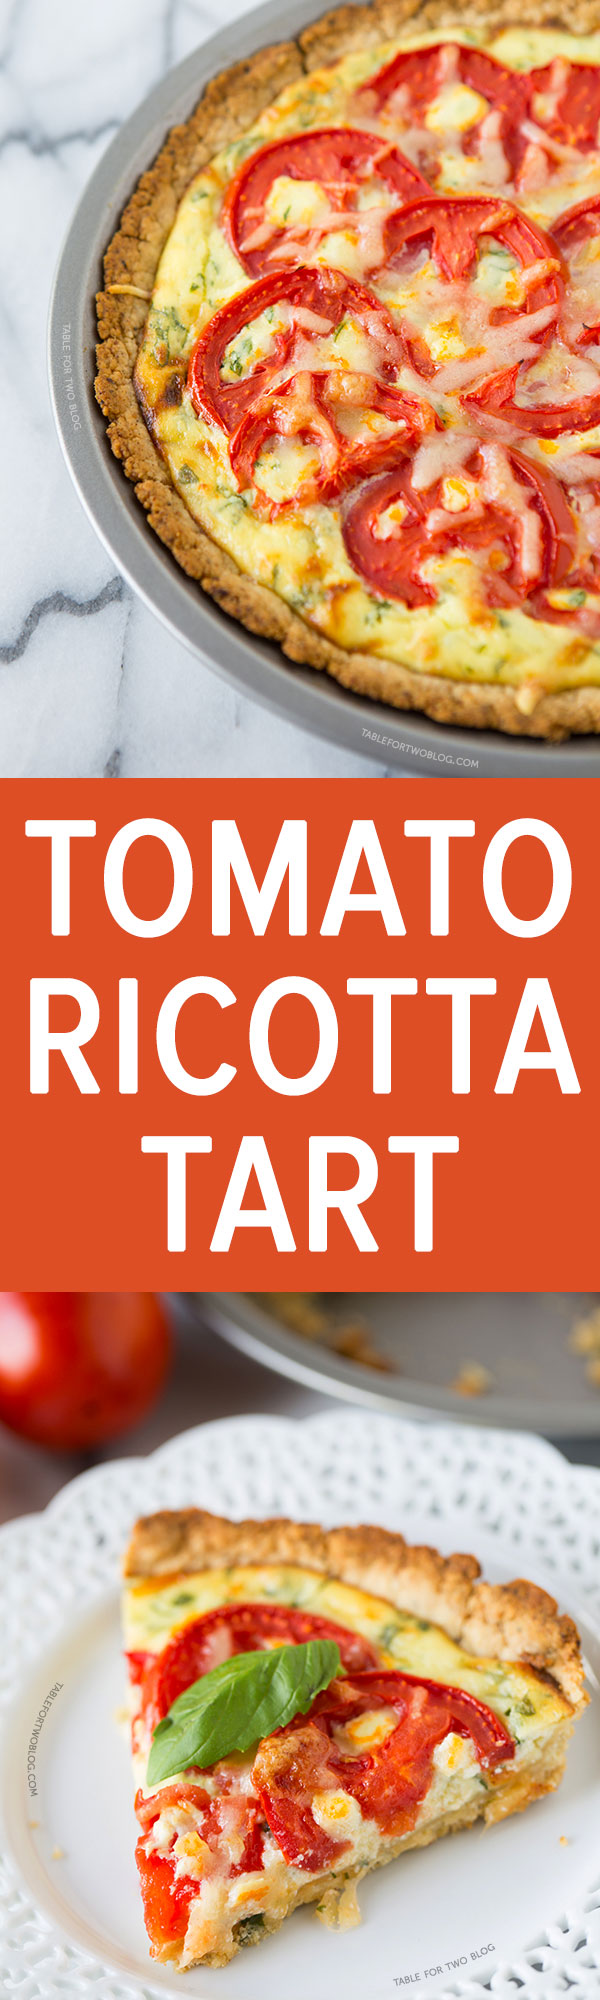 This tomato ricotta tart is full of fresh summer flavor that'll drag out the end of summer for just a little while! It takes very little prep and the flavors are incredible.